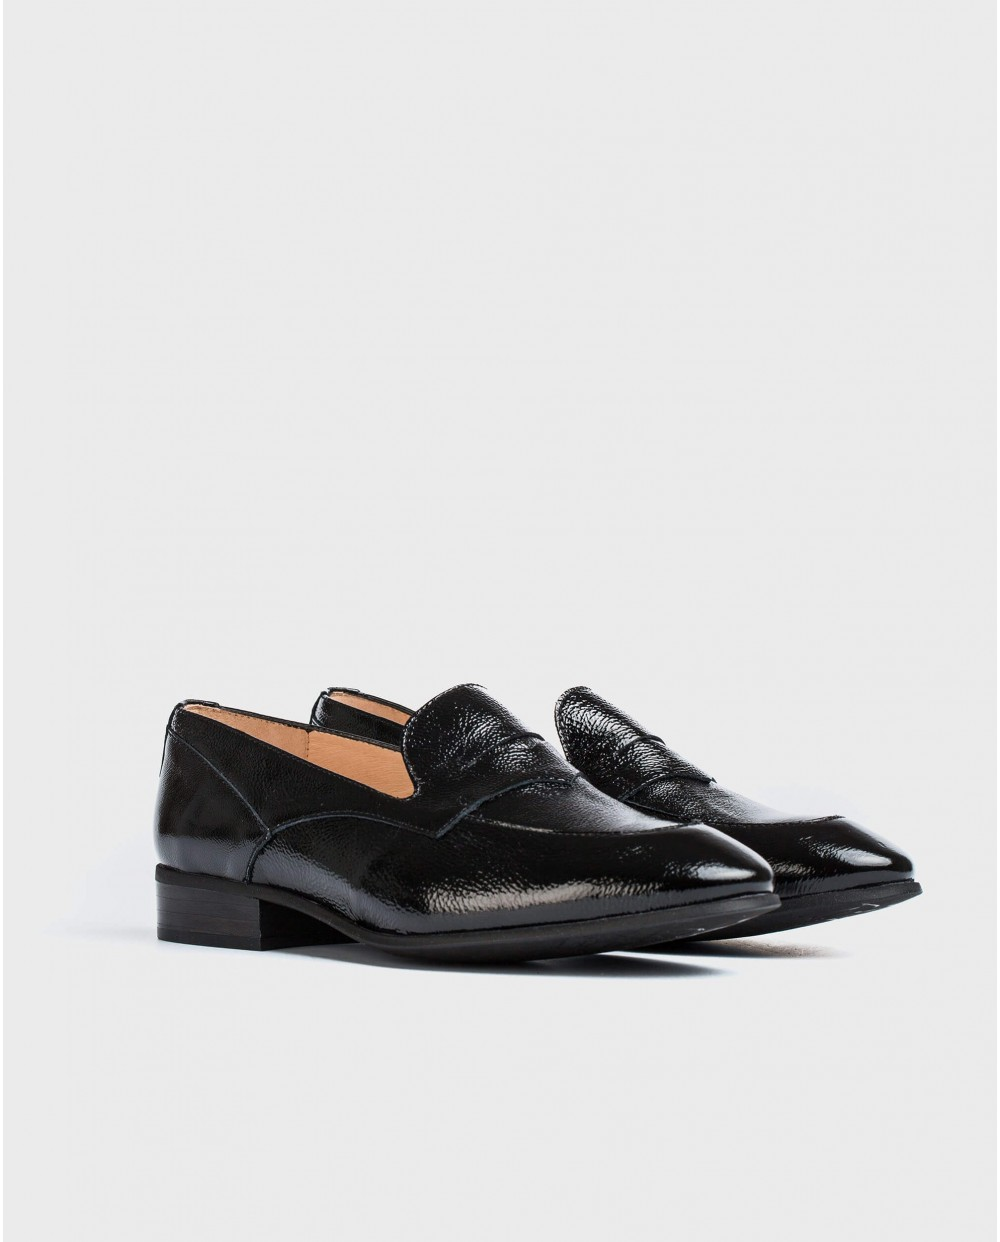 Wonders-Flat Shoes-Patent leather Penny loafer